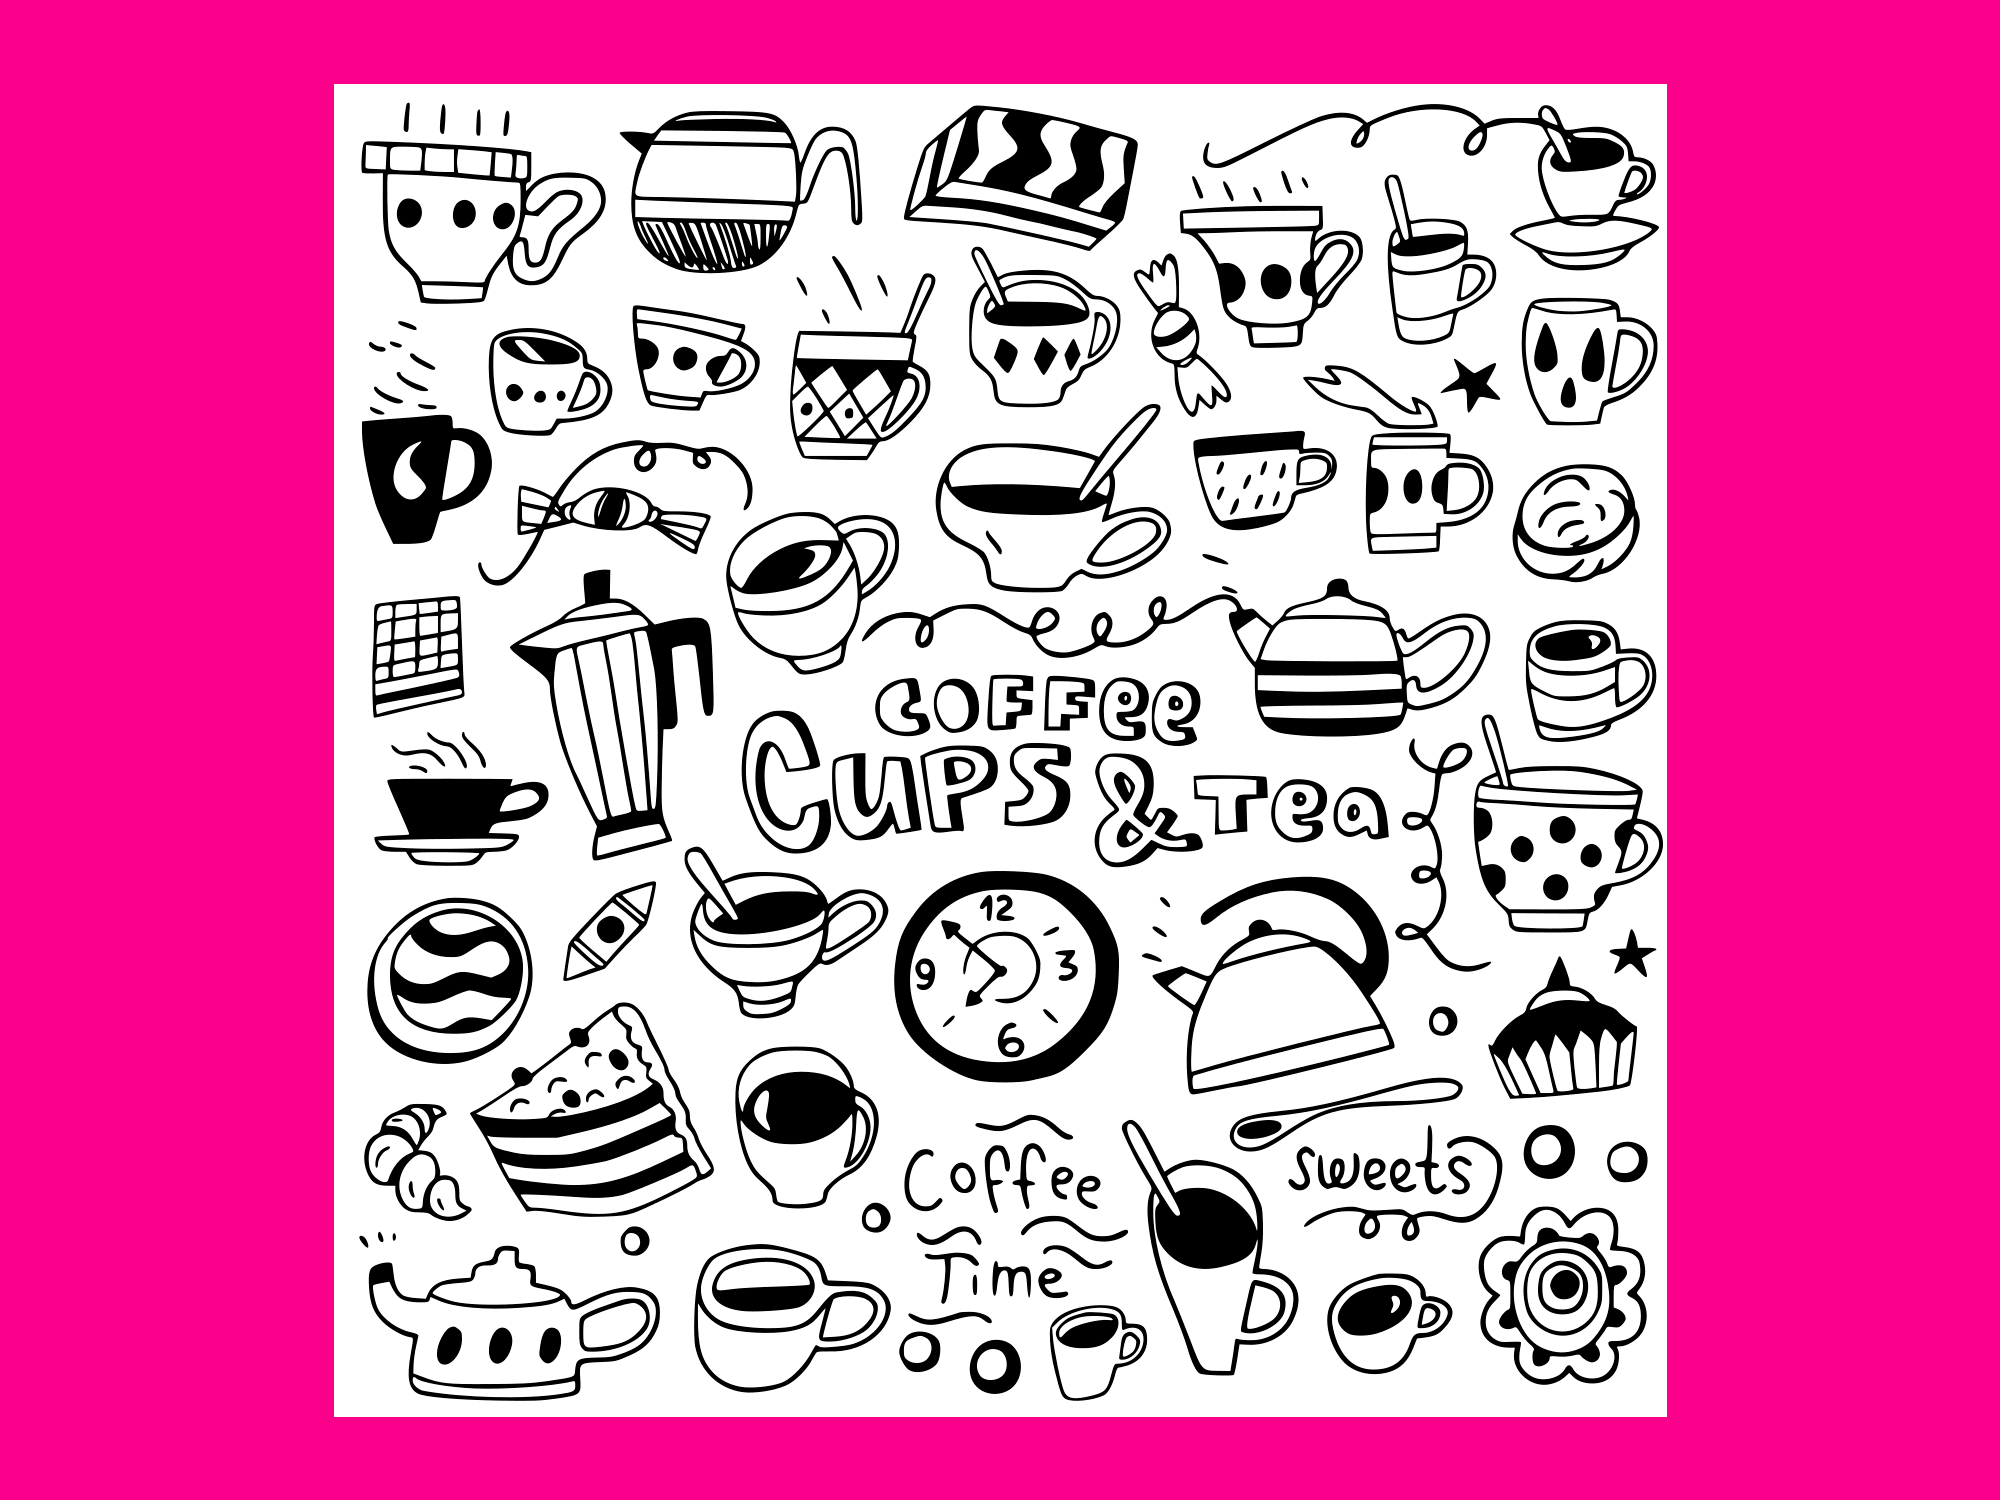 Download Free Coffee Cups Doodles 1 Graphic By Anrasoft Creative Fabrica for Cricut Explore, Silhouette and other cutting machines.